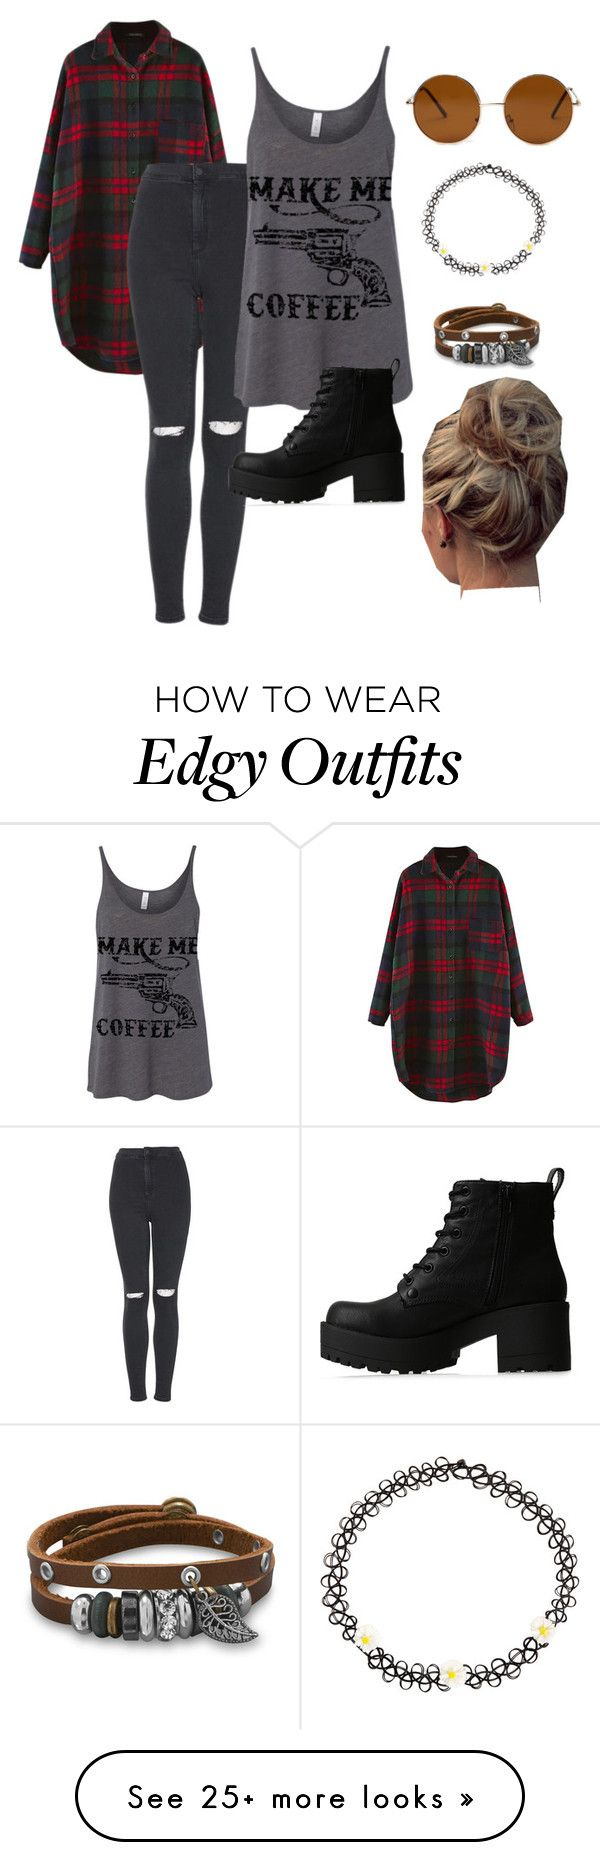 """Boho+Grunge Mix"" by trinj3 on Polyvore featuring Topshop, Lipstik, Forever 21, Monsoon, BillyTheTree, women's clothing, women, female, woman and misses"